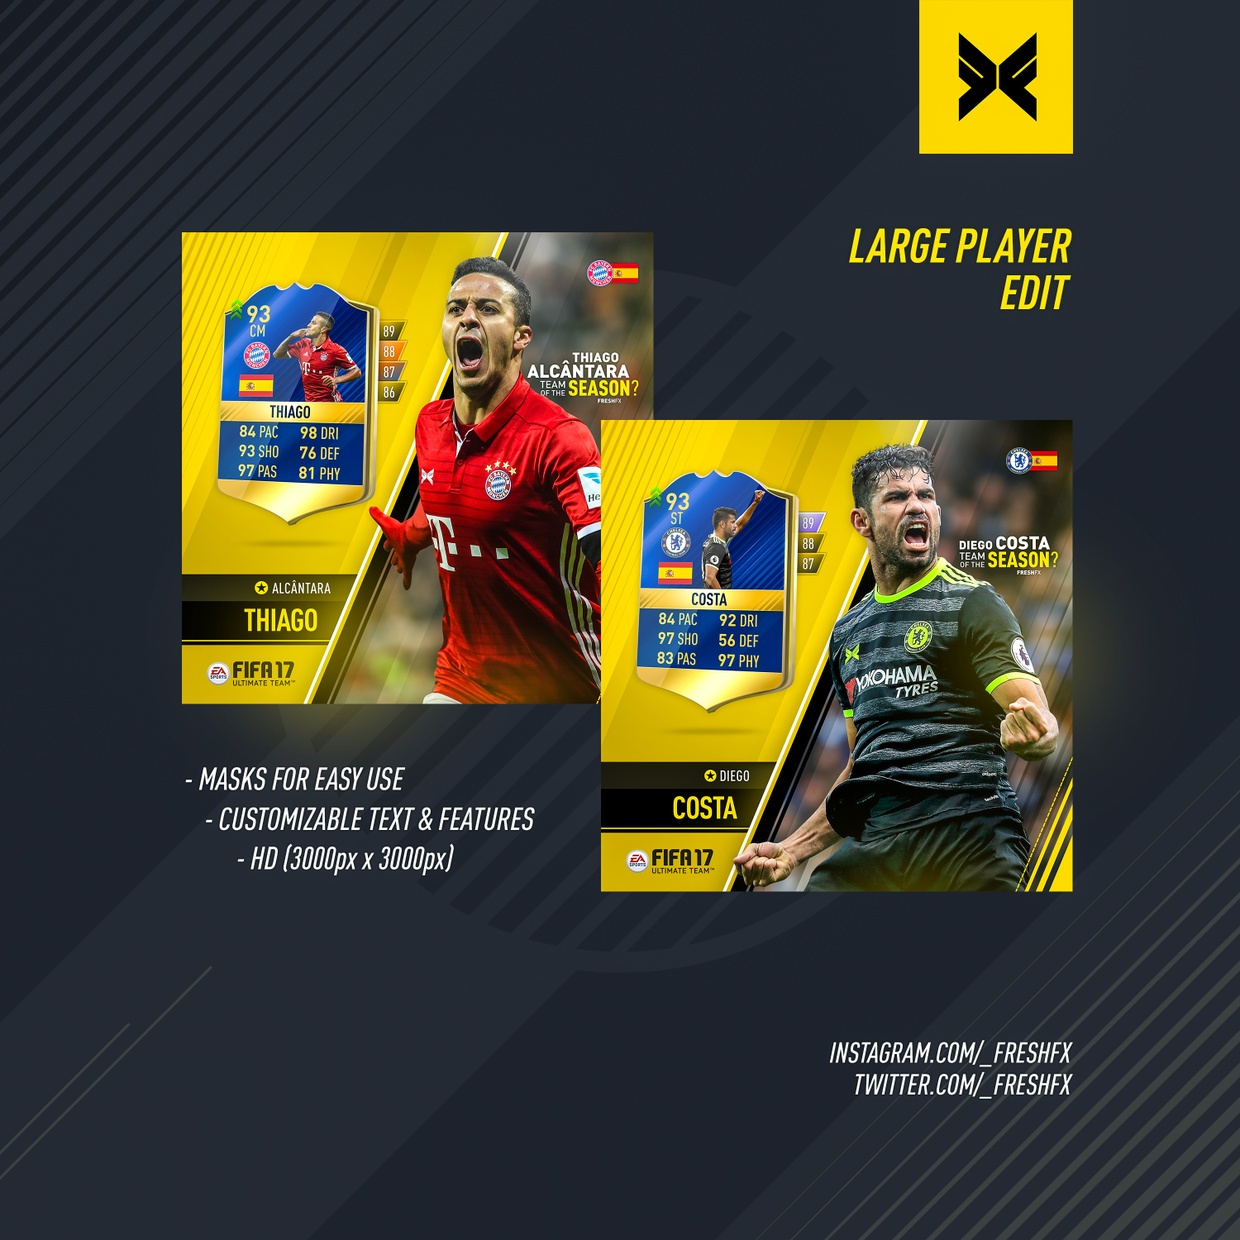 FIFA 17 LARGE PLAYER EDIT TEMPLATE